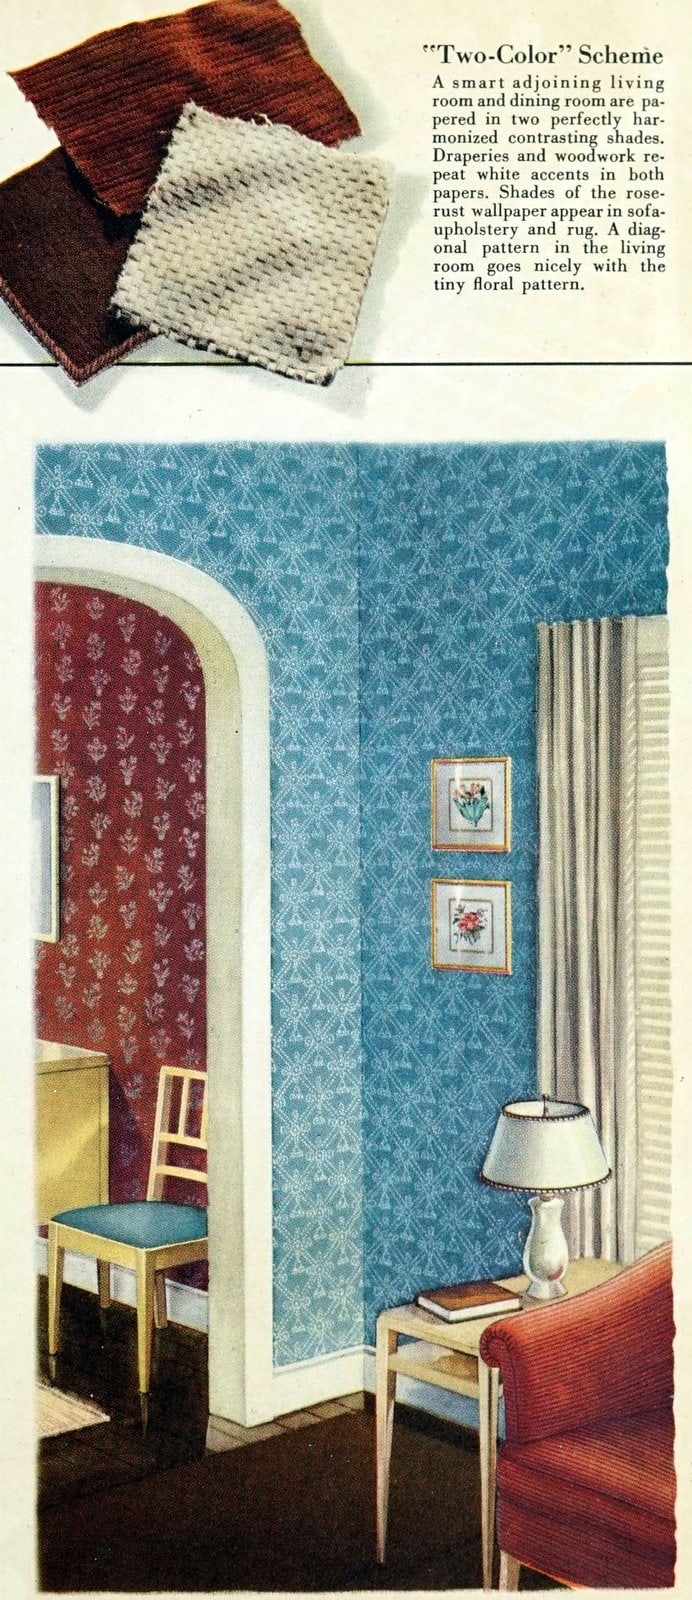 1940s vintage wallpaper styles, patterns and colors